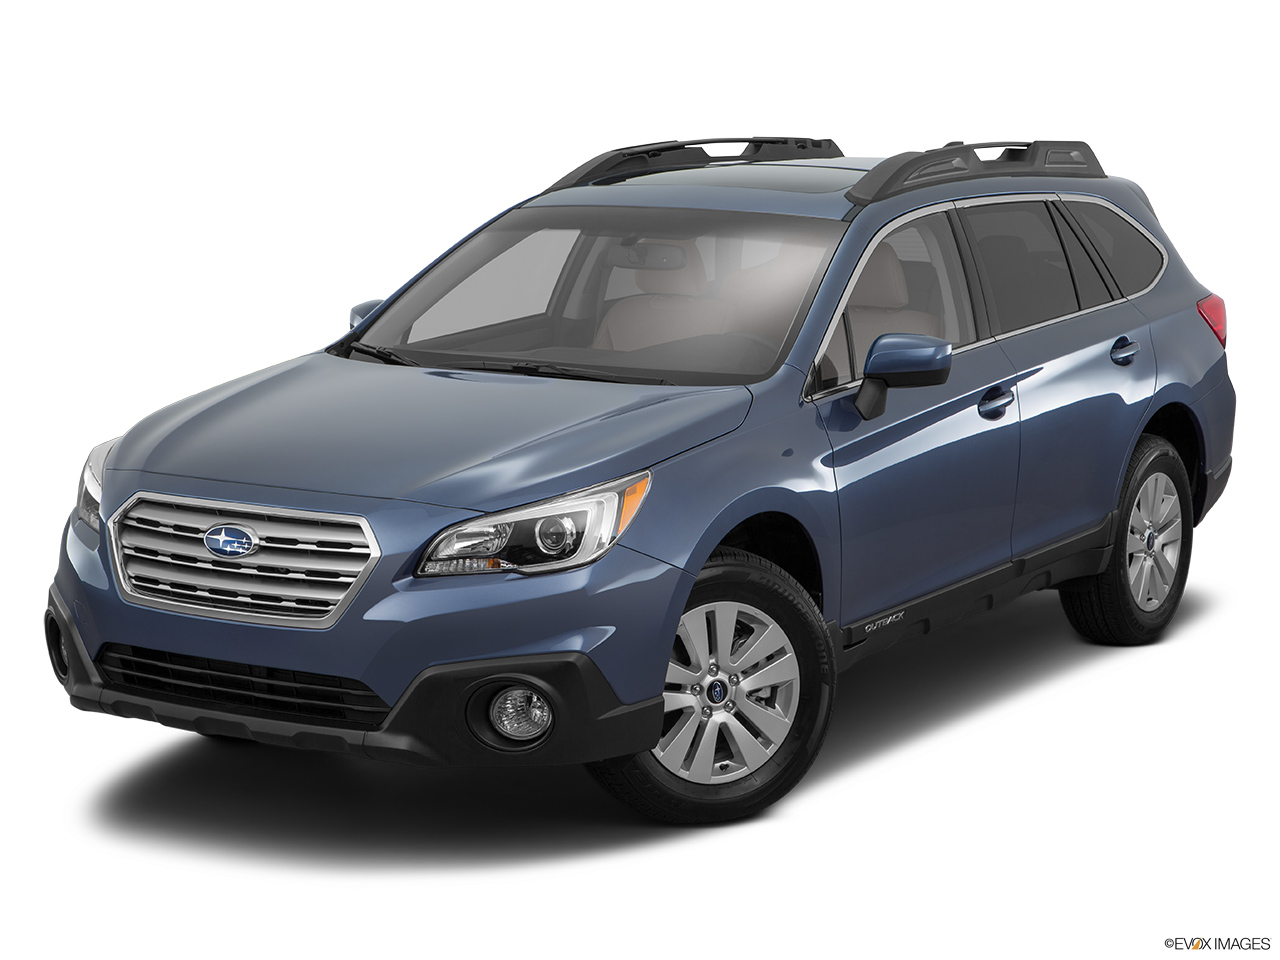 subaru forester vs toyota rav4 vs honda crv autos post. Black Bedroom Furniture Sets. Home Design Ideas